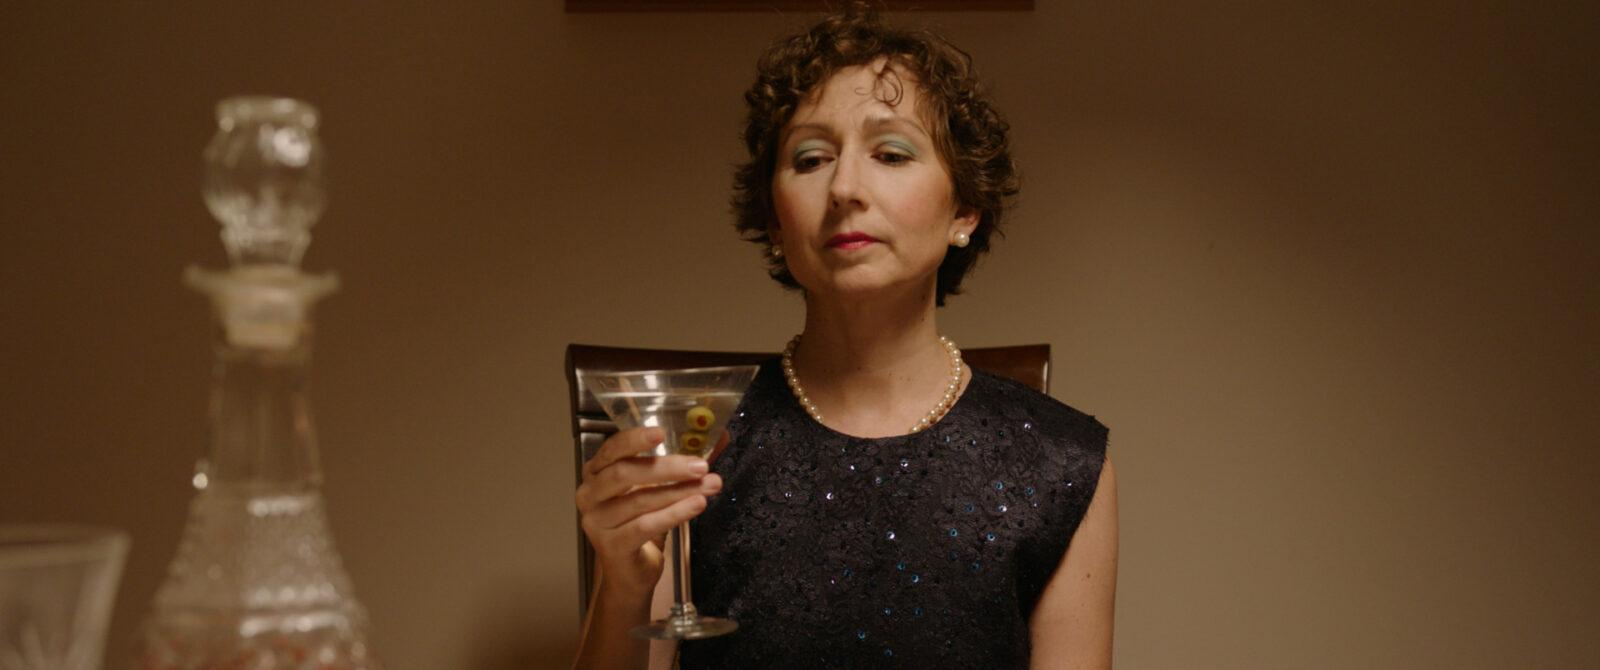 A woman drinkng a drink at a table.